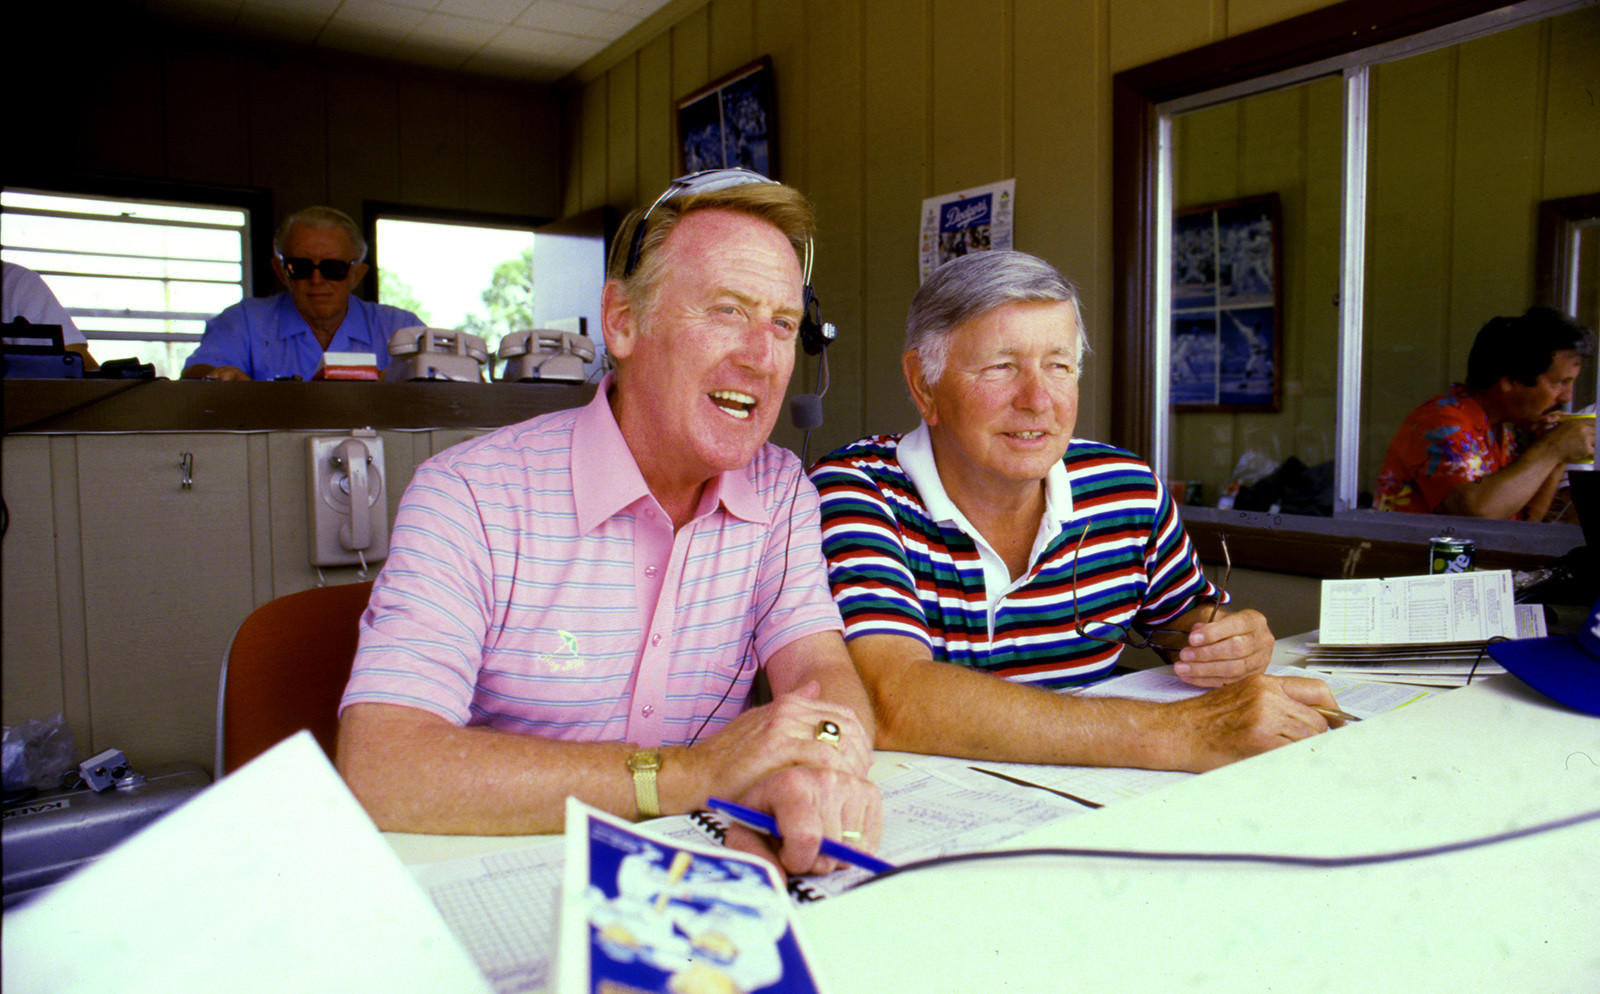 Vin Scully with Jerry Doggett in the announcer's booth at Dodgertown during spring training in Vero Beach, Florida on April 8, 1985.